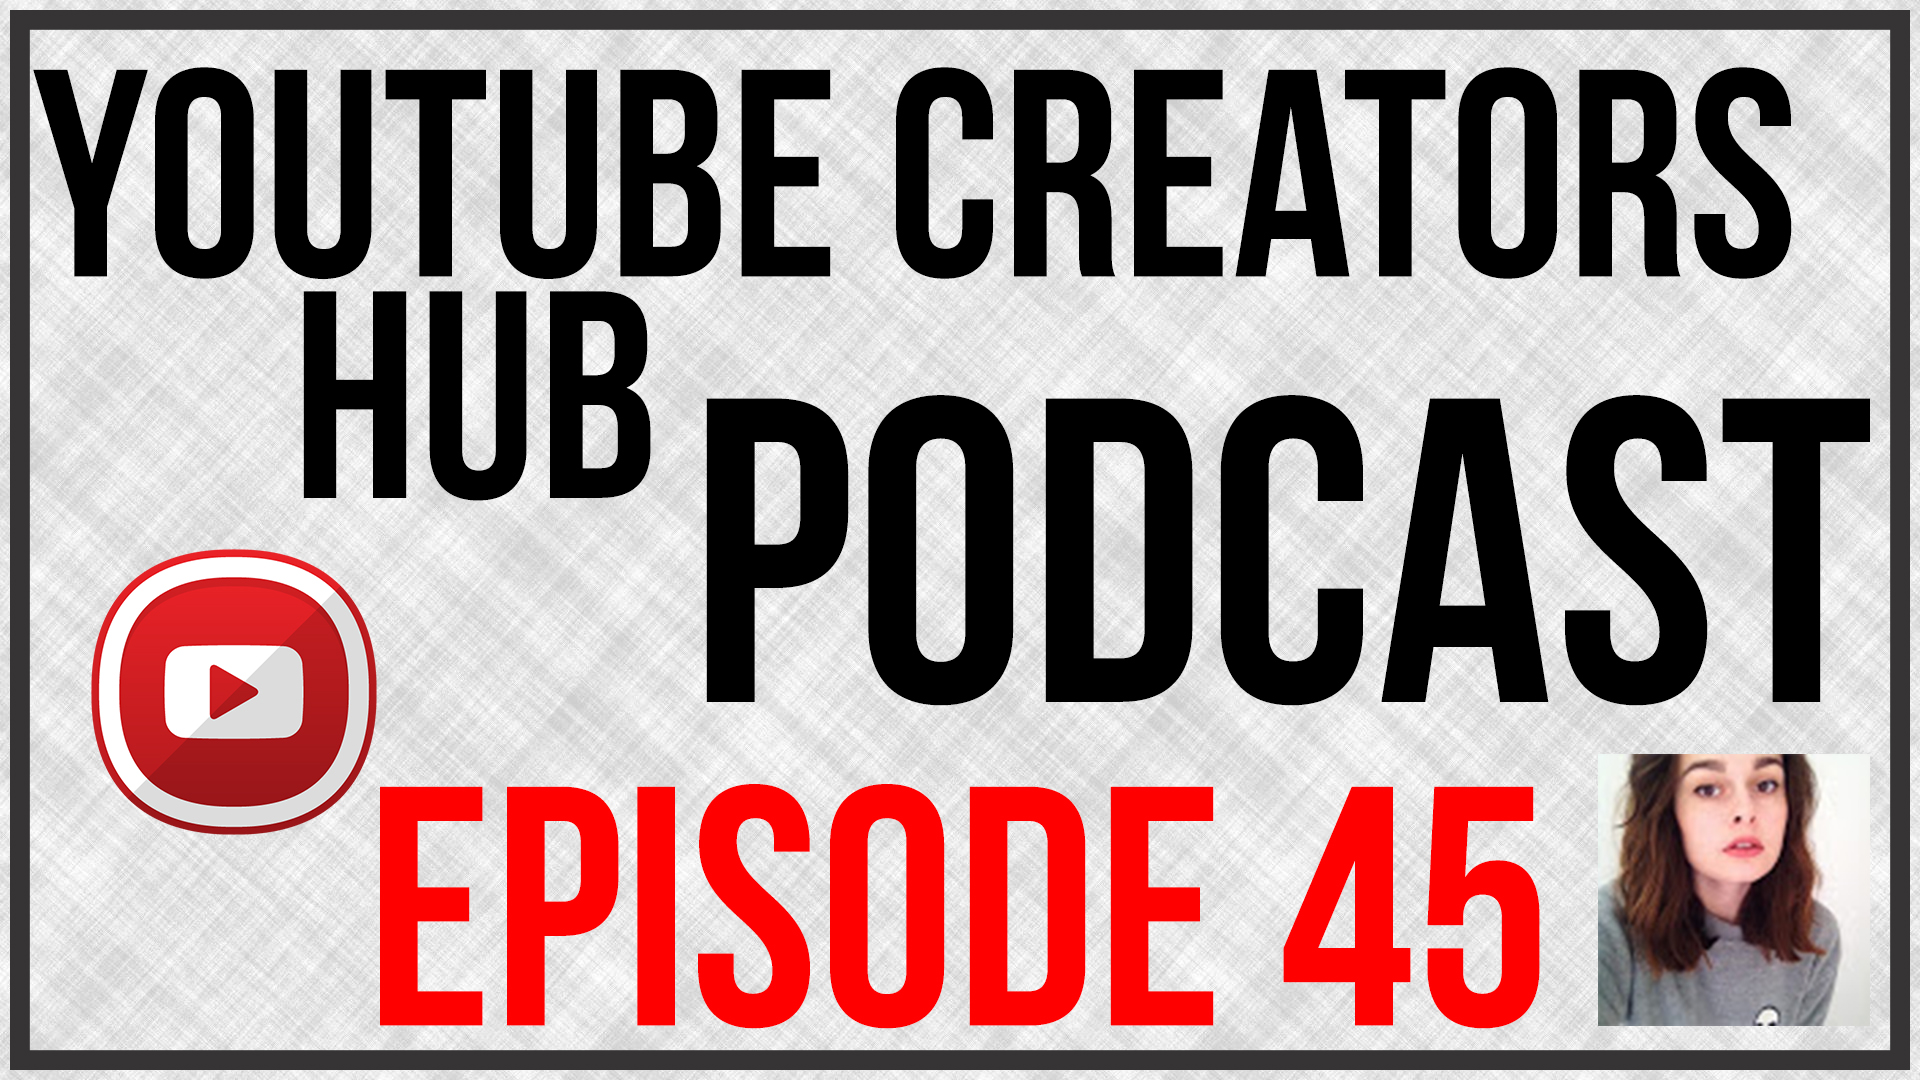 YouTube Creators Hub Podcast Episode 45